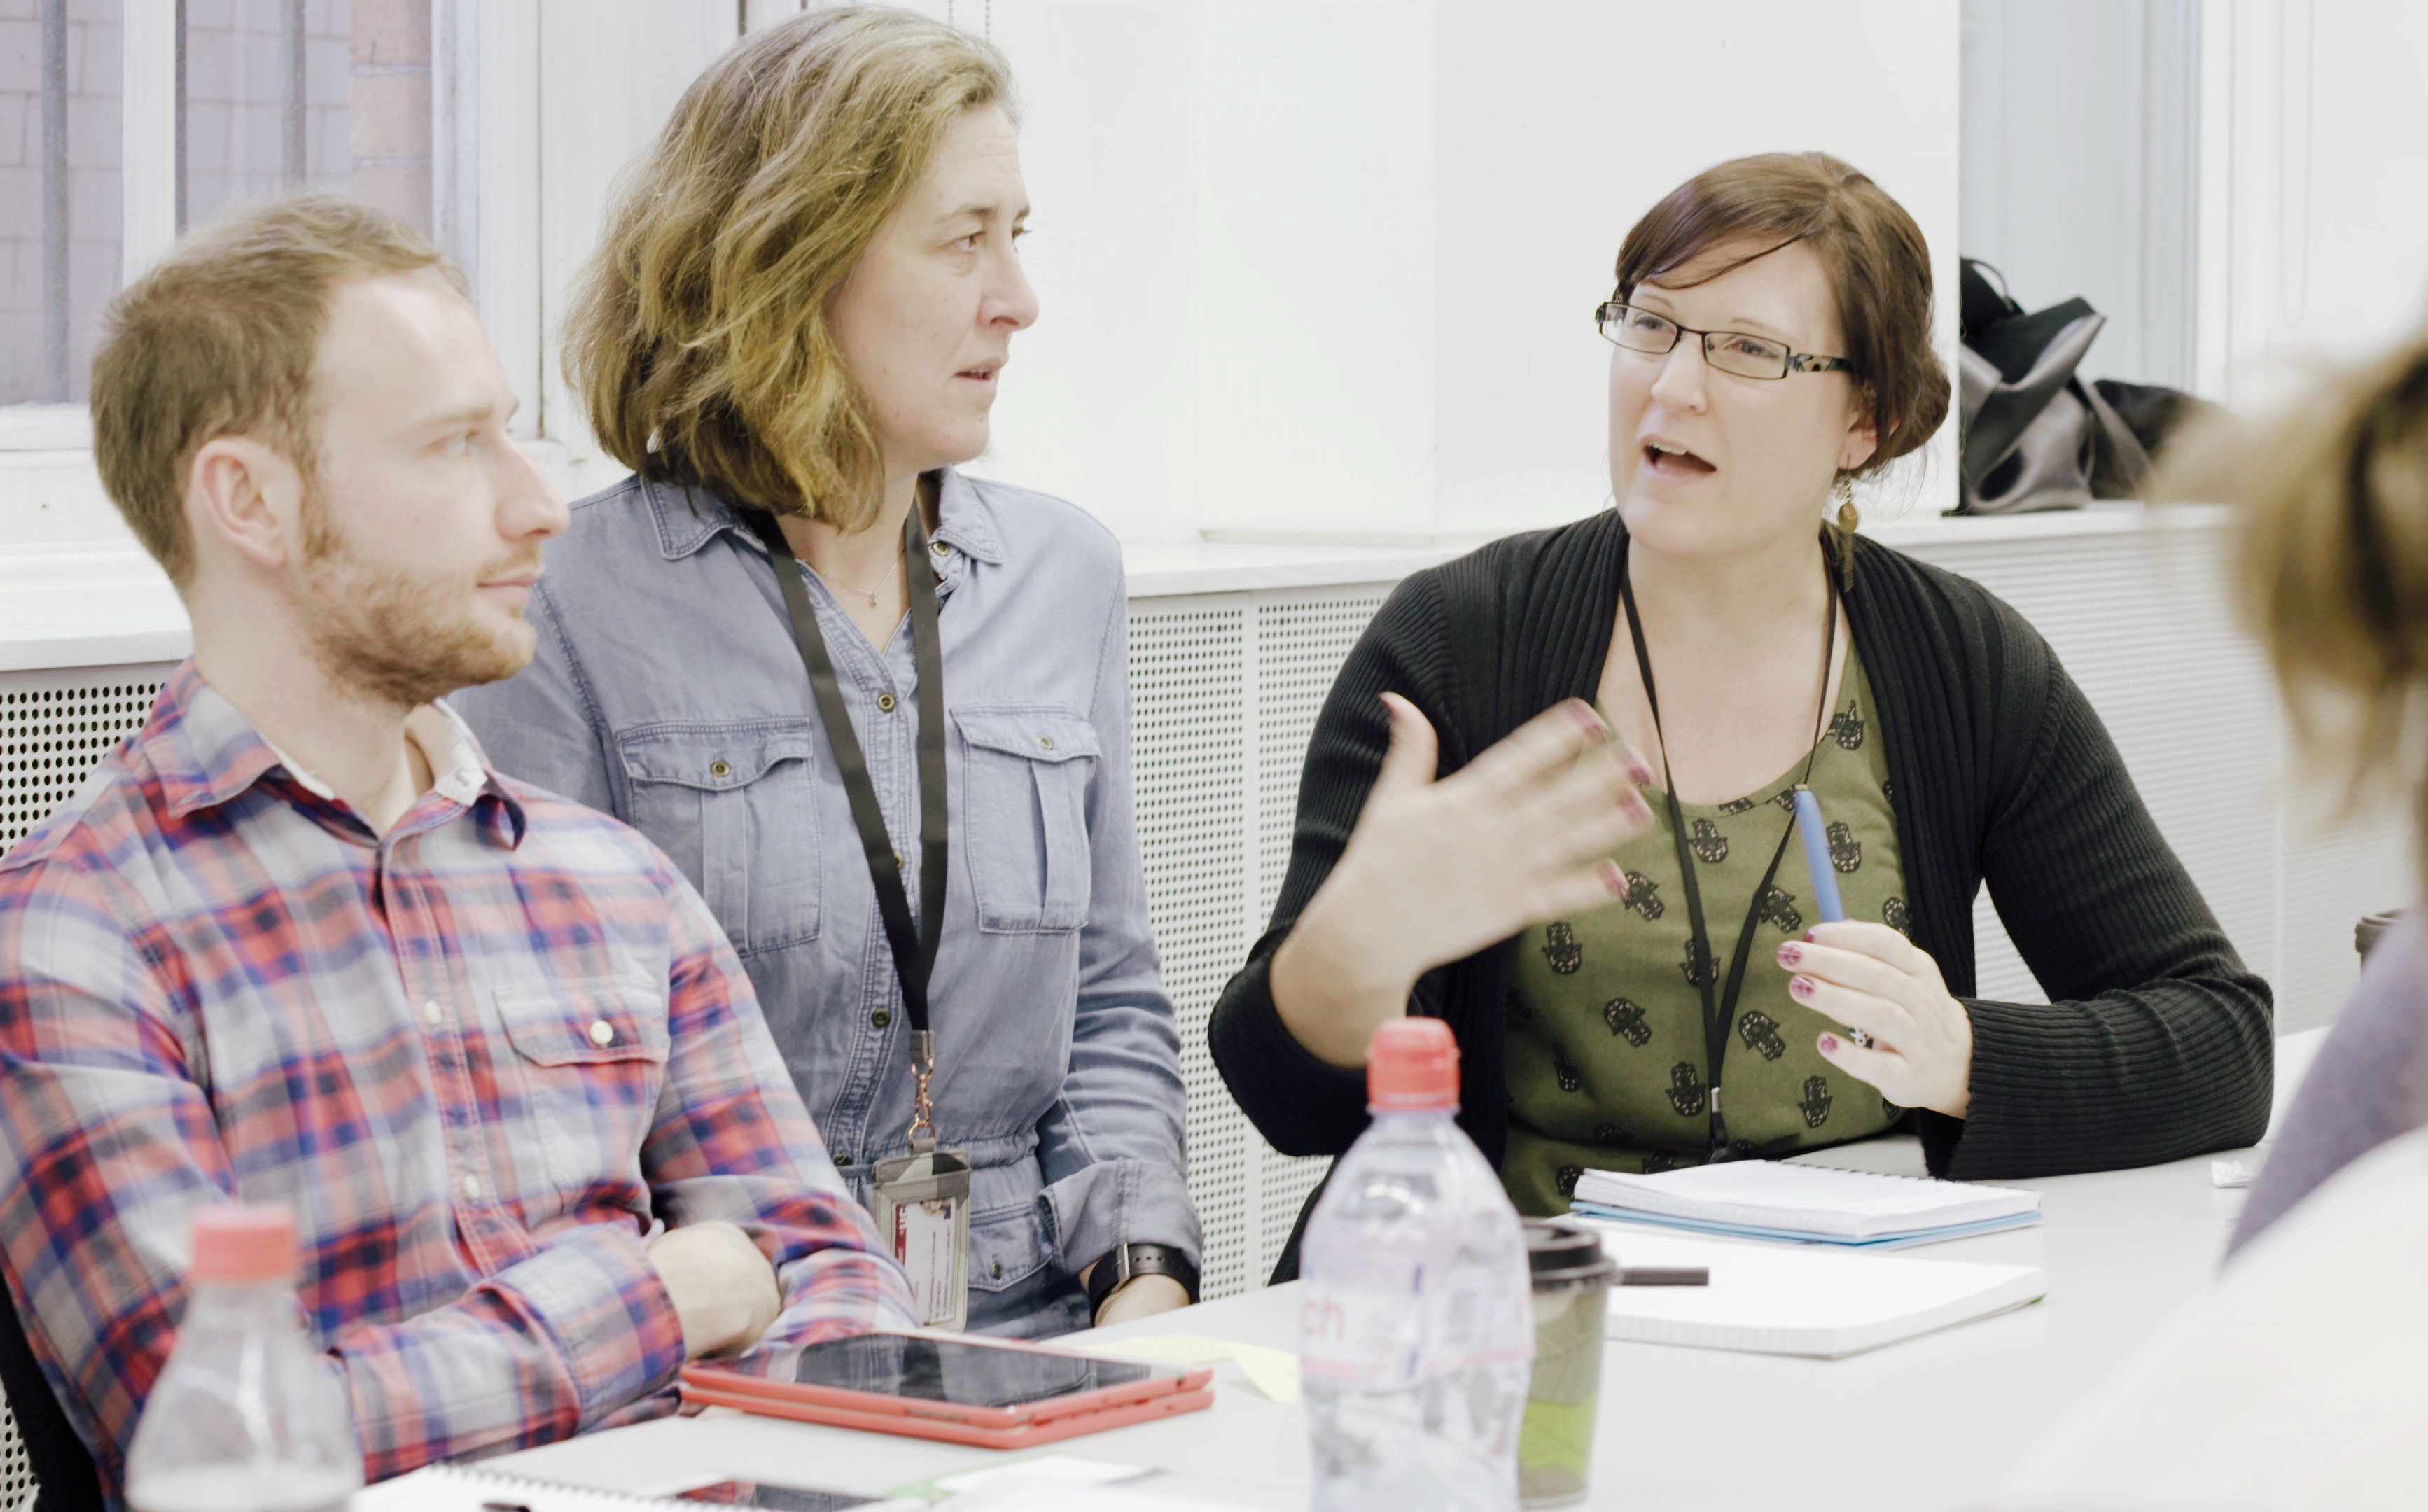 MSc Speech and Language Therapy